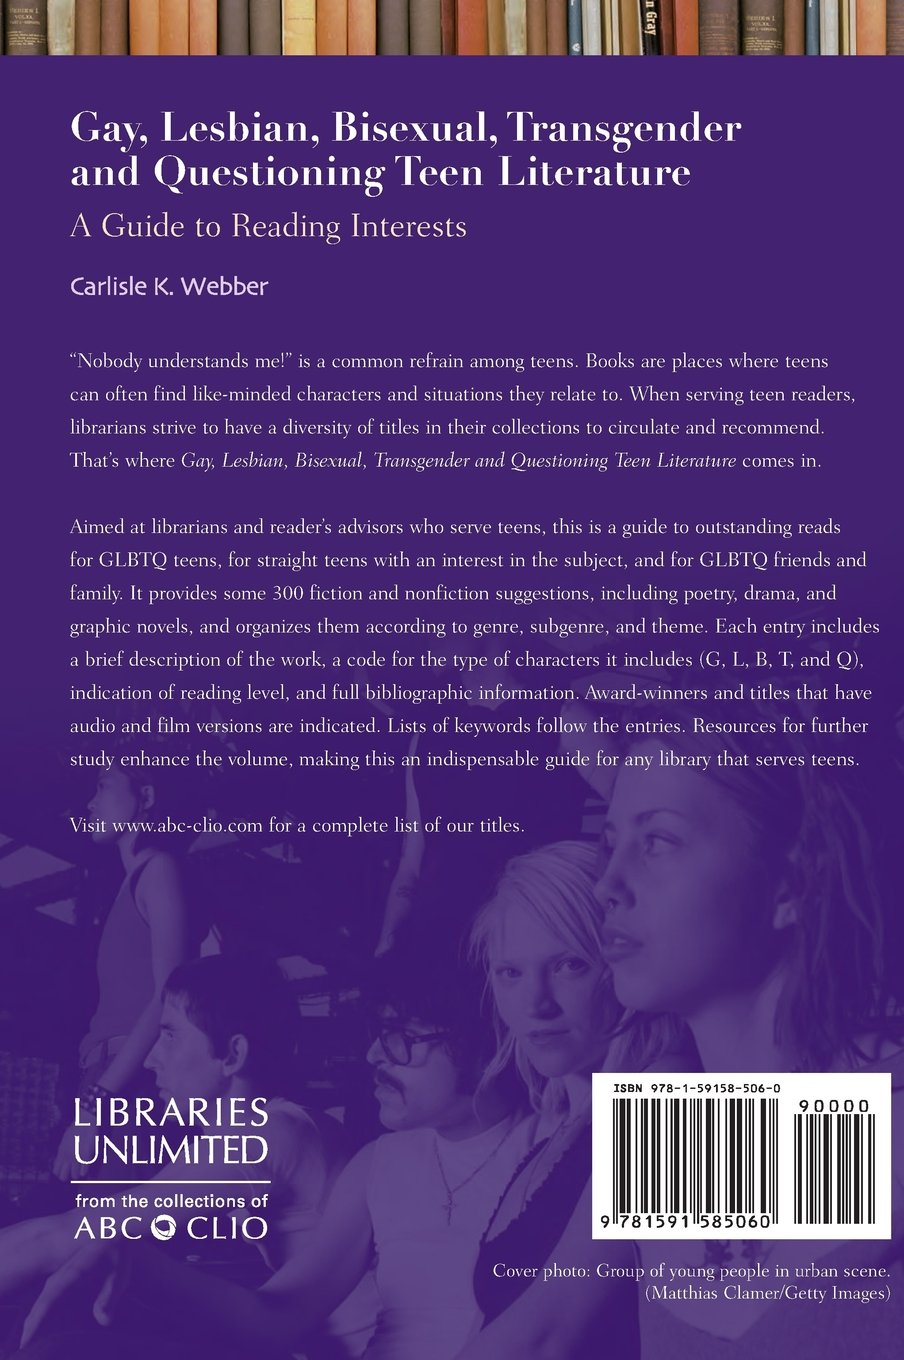 Gay, Lesbian, Bisexual, Transgender and Questioning Teen Literature: A Guide to Reading Interests (Genreflecting Advisory Series) by Brand: Libraries Unlimited